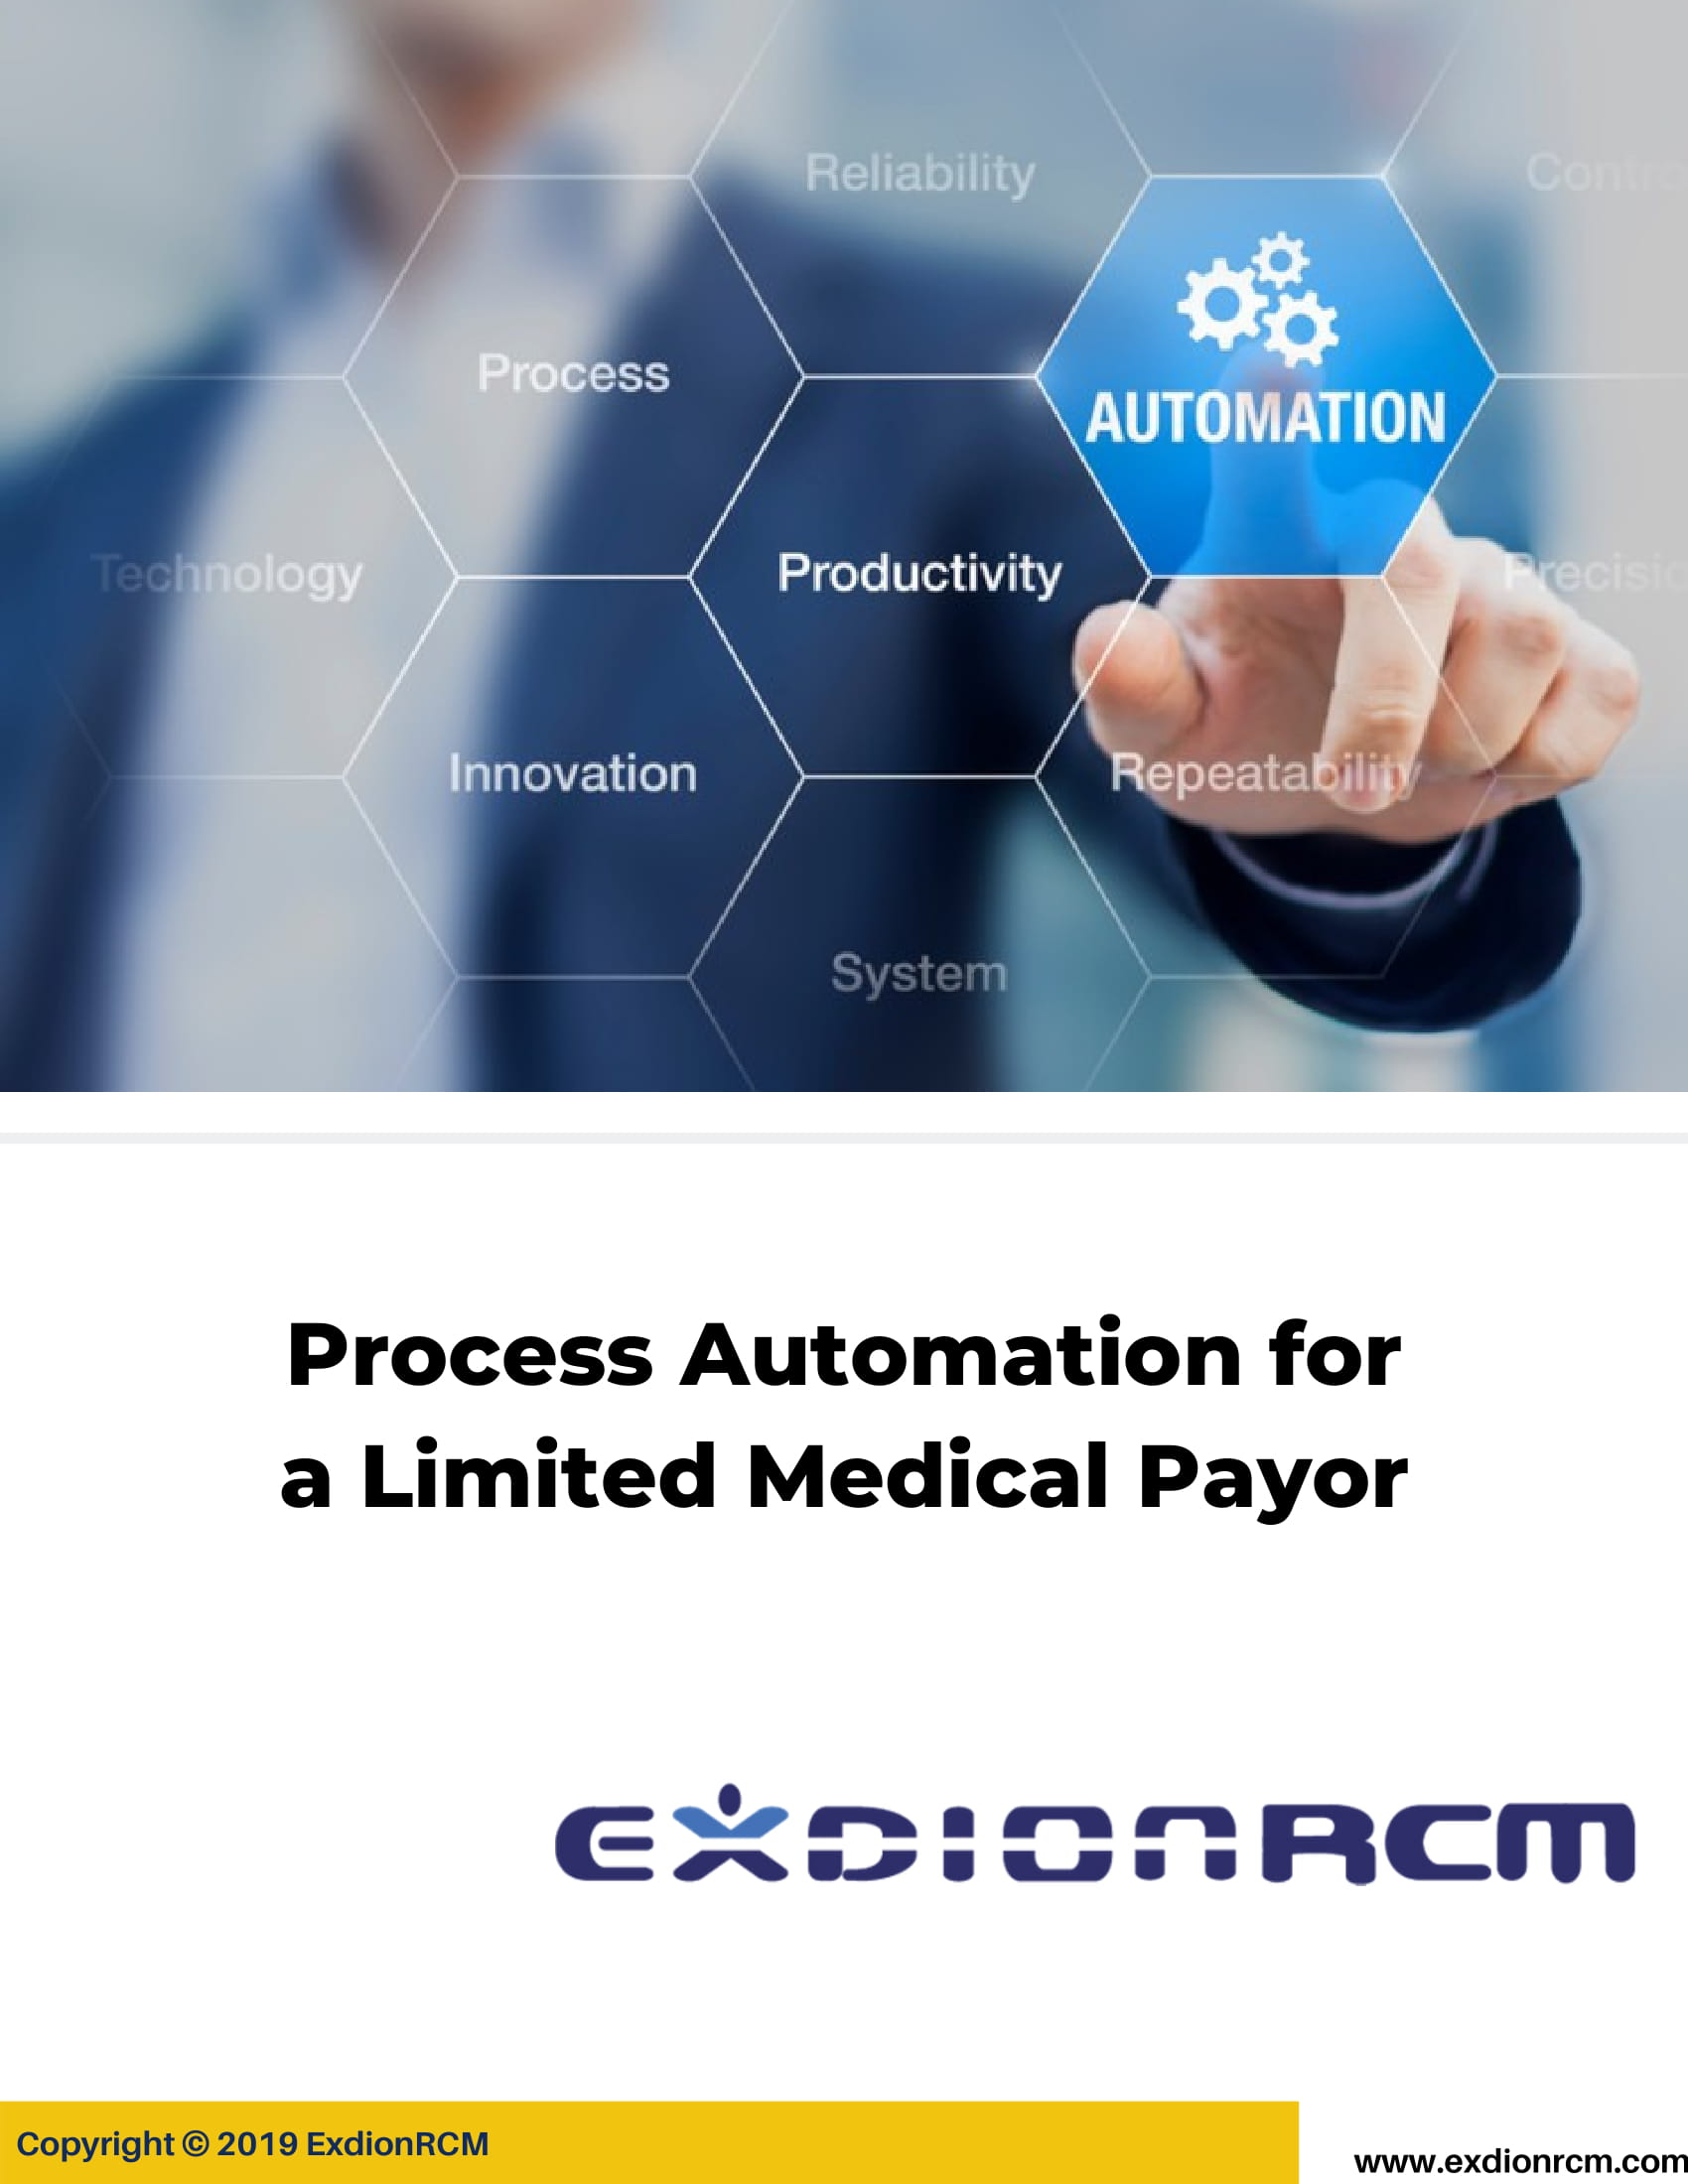 Process-Automation-for-a-Limited-Medical-Payor